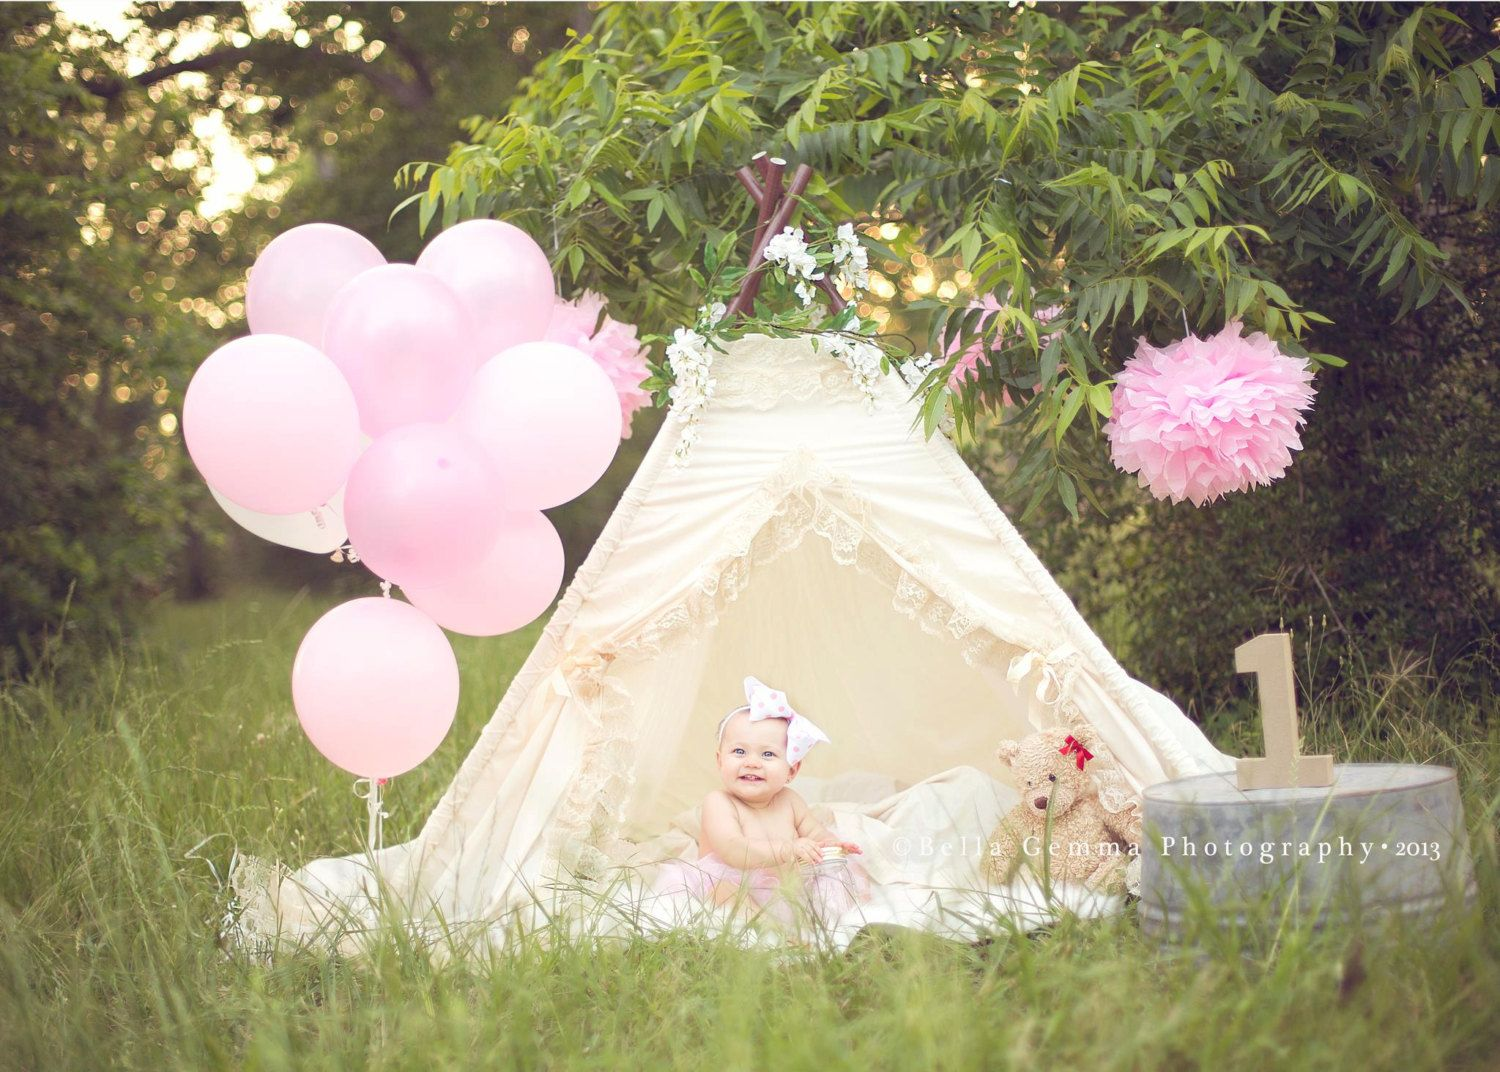 lace teepee tent photo prop by SugarShacksTeepee on Etsy $117.00 & lace teepee tent photo prop by SugarShacksTeepee on Etsy $117.00 ...